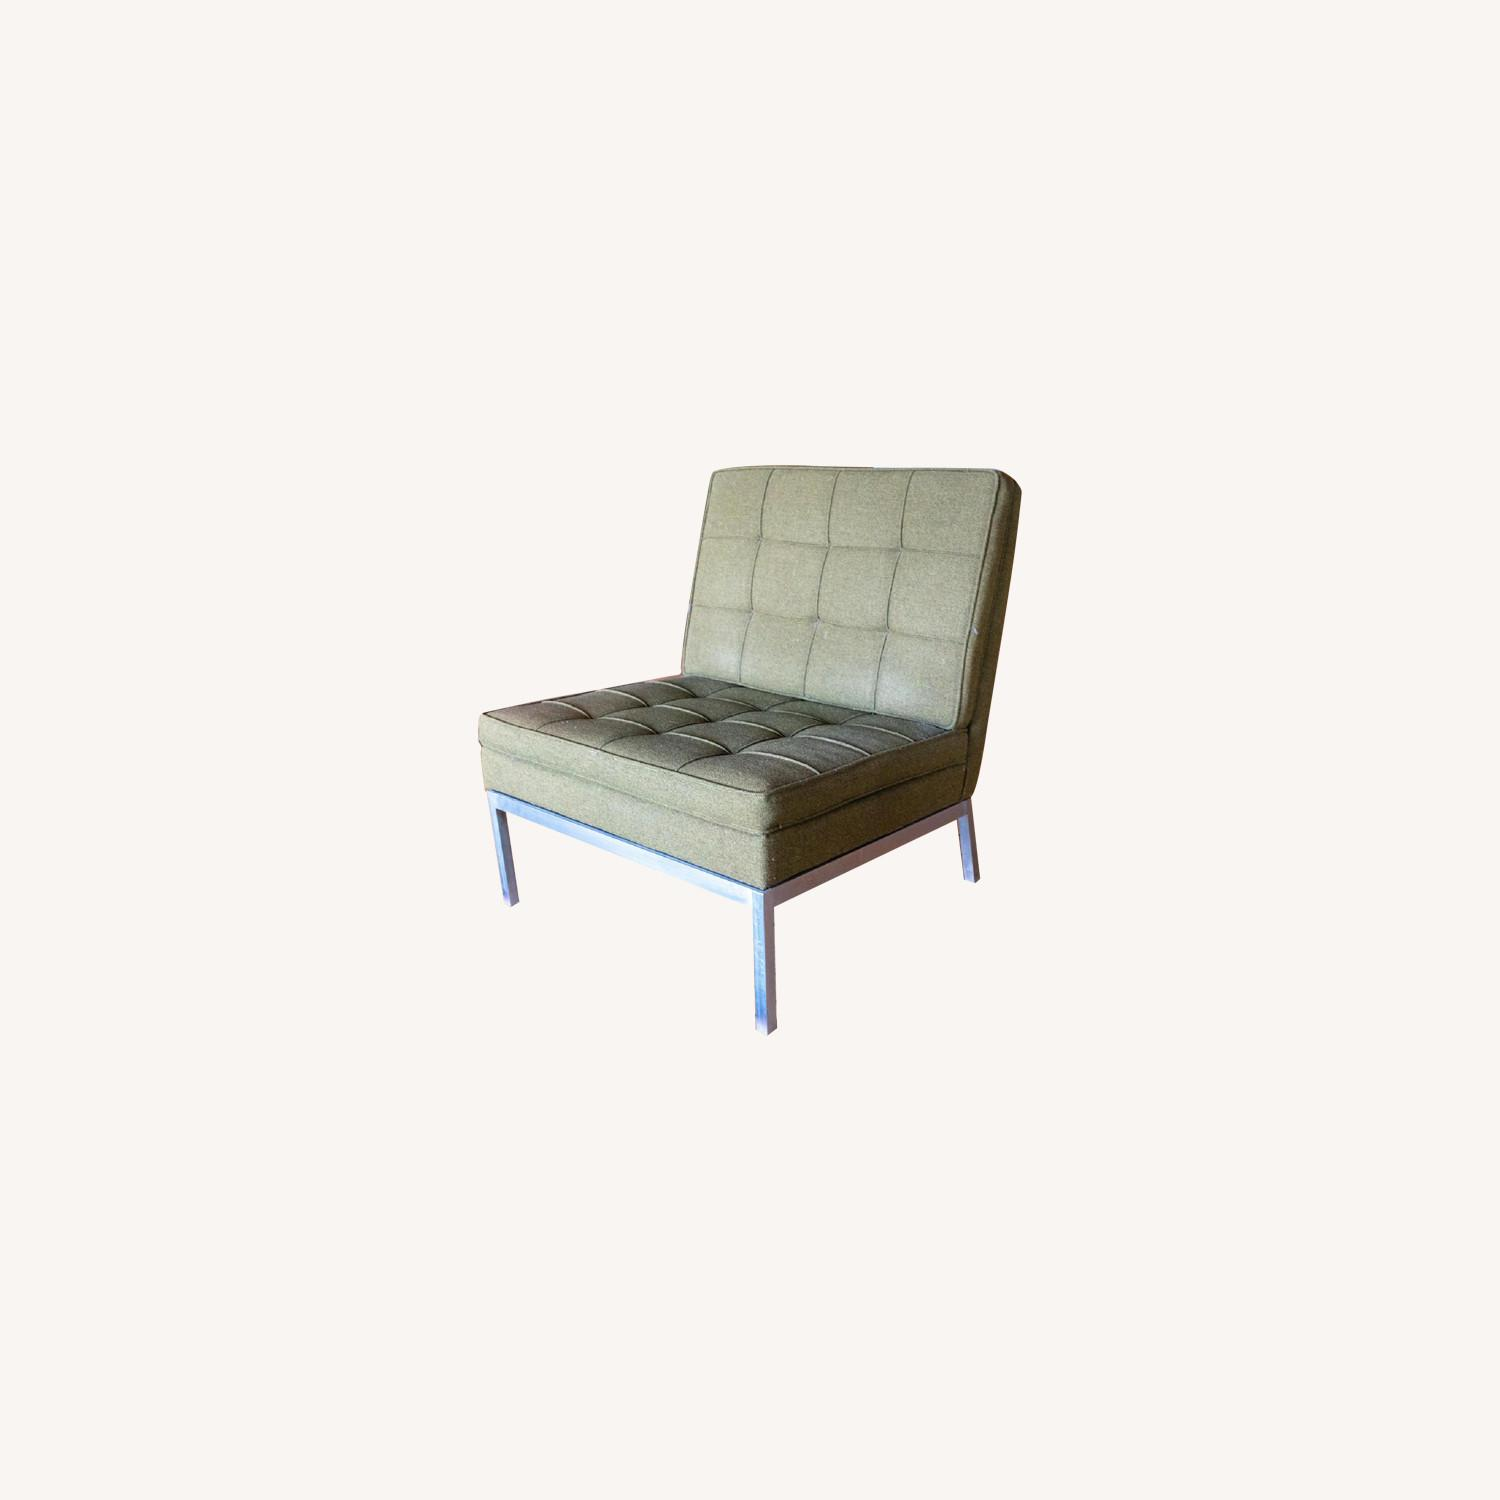 Vintage Florence Knoll Chair - image-0